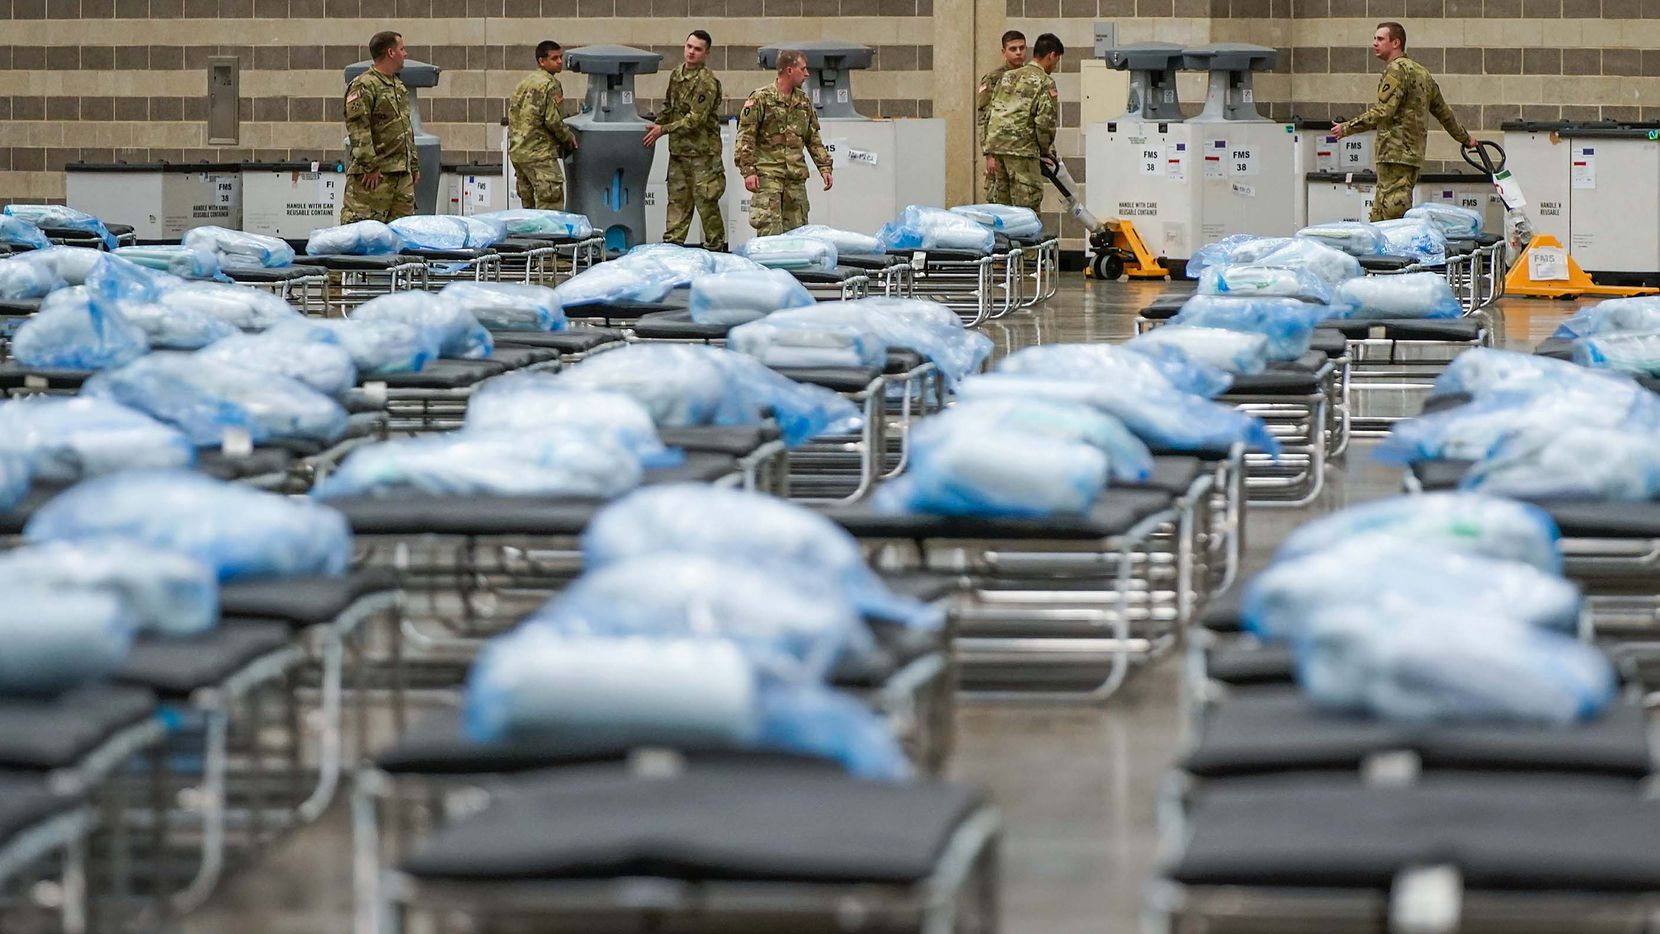 Members of the Texas Army National Guard unpacked crates of supplies as they set up a field hospital March 31 at the Kay Bailey Hutchison Convention Center in Dallas in response to the pandemic.